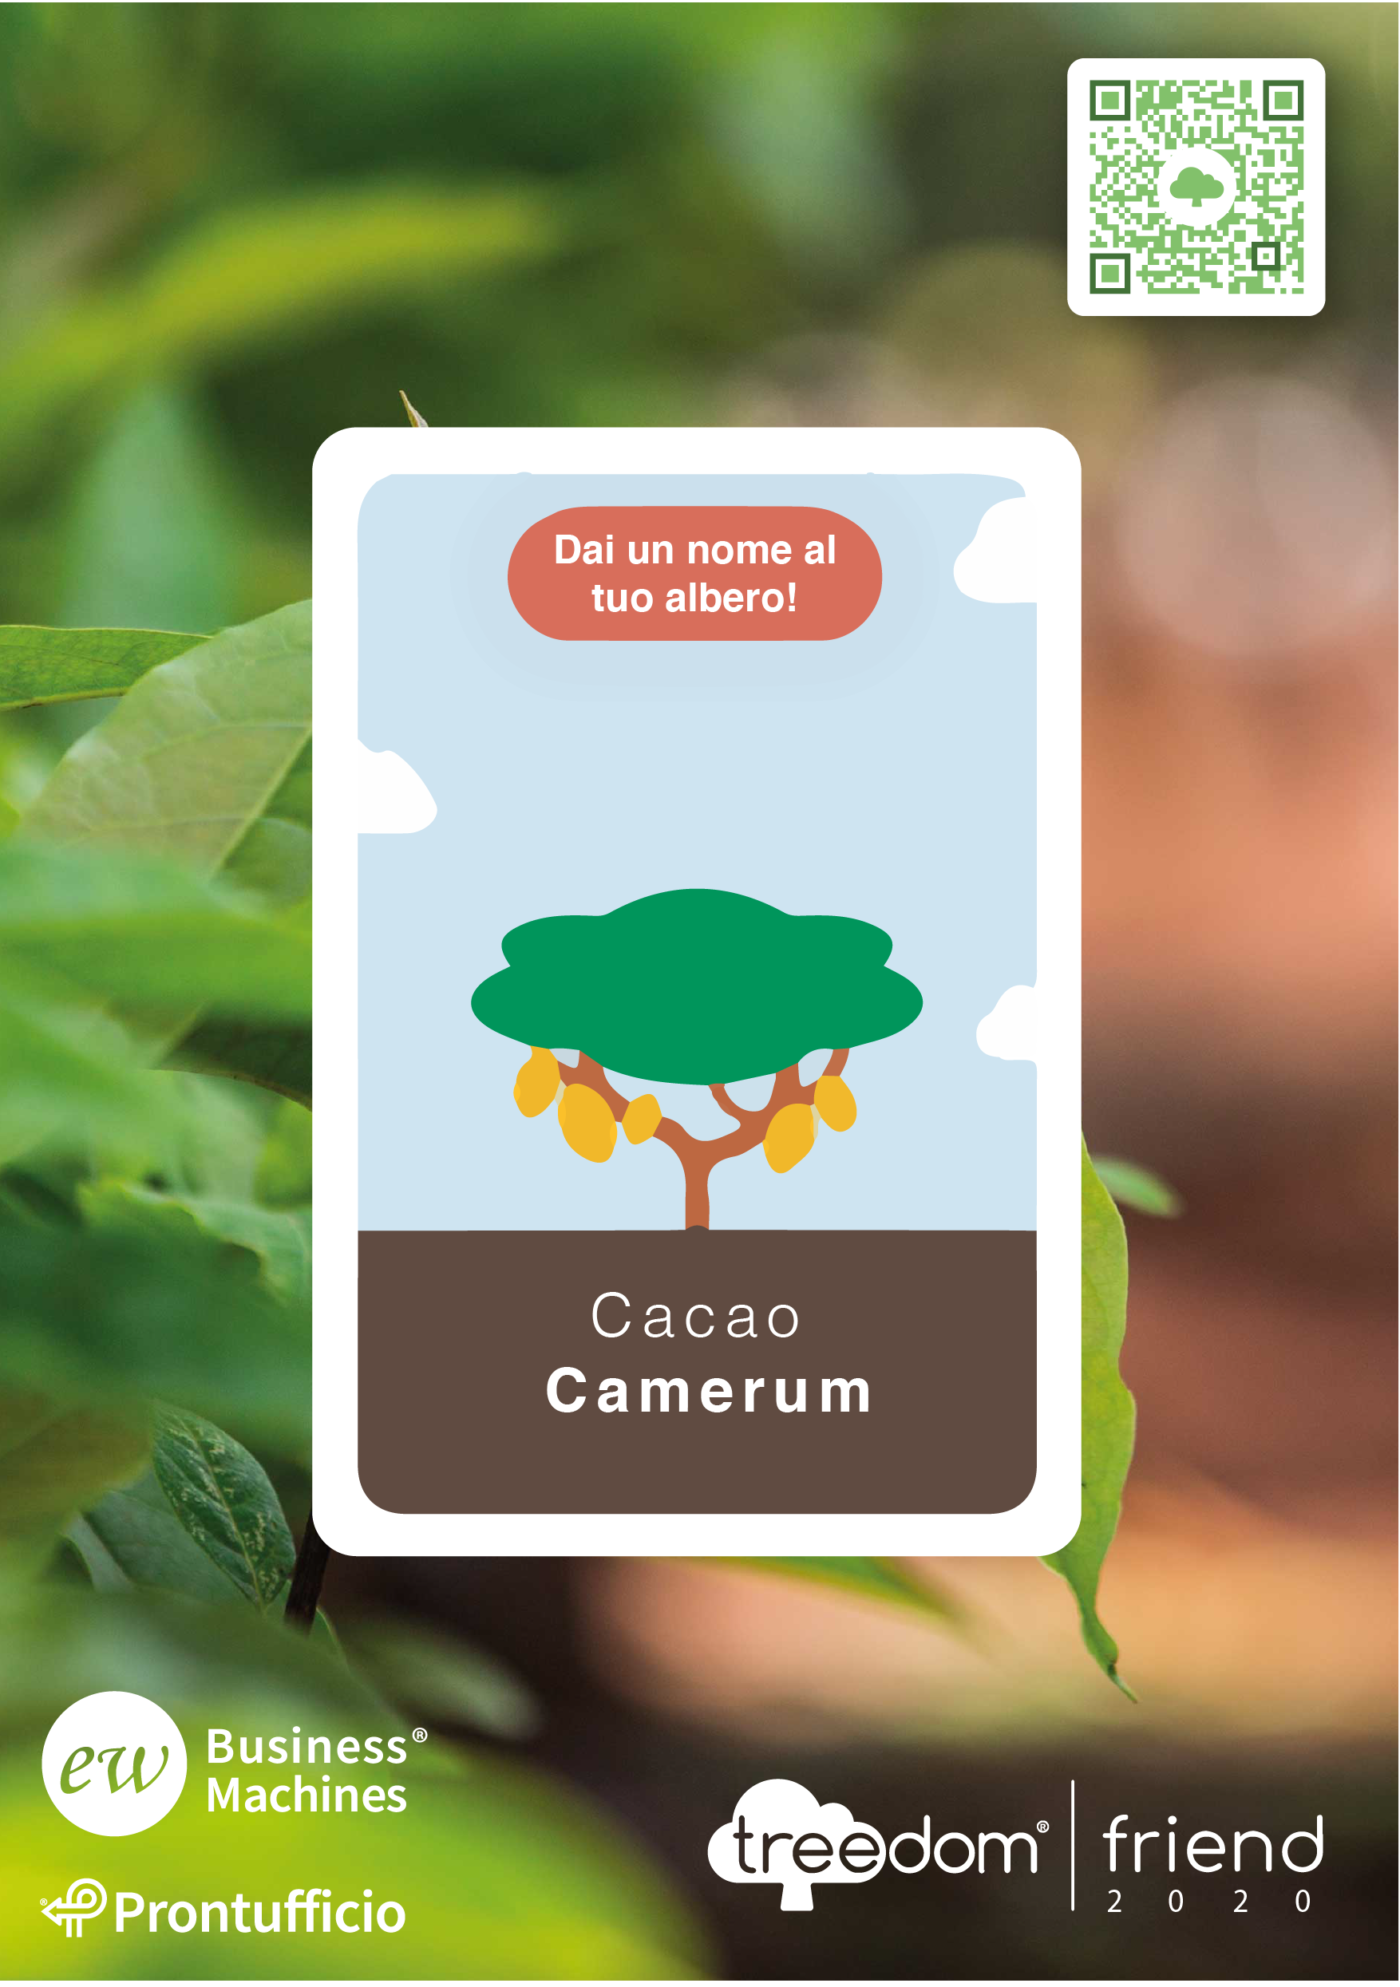 treedom - Foresta Camerun Ew Business Machines